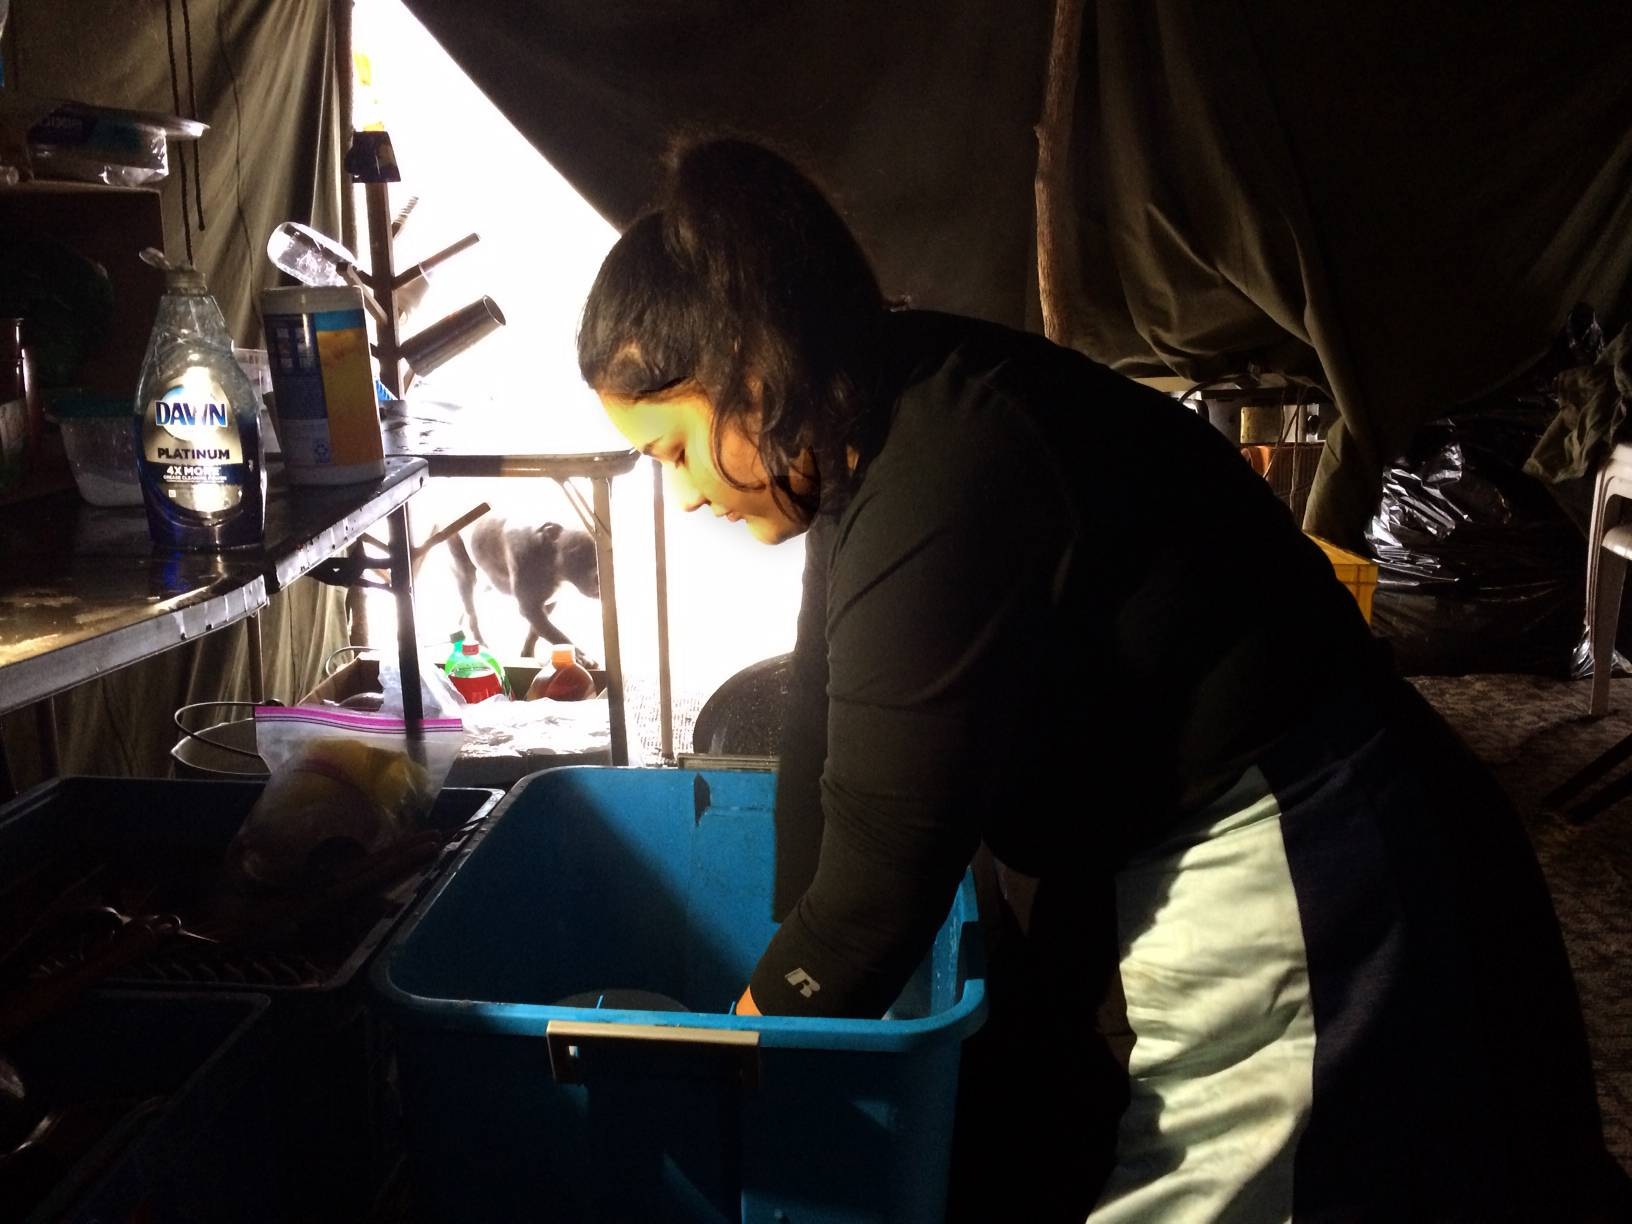 Sarah Shomin, who grew up on a reservation in Michigan, washes dishes in the camp's kitchen tent.